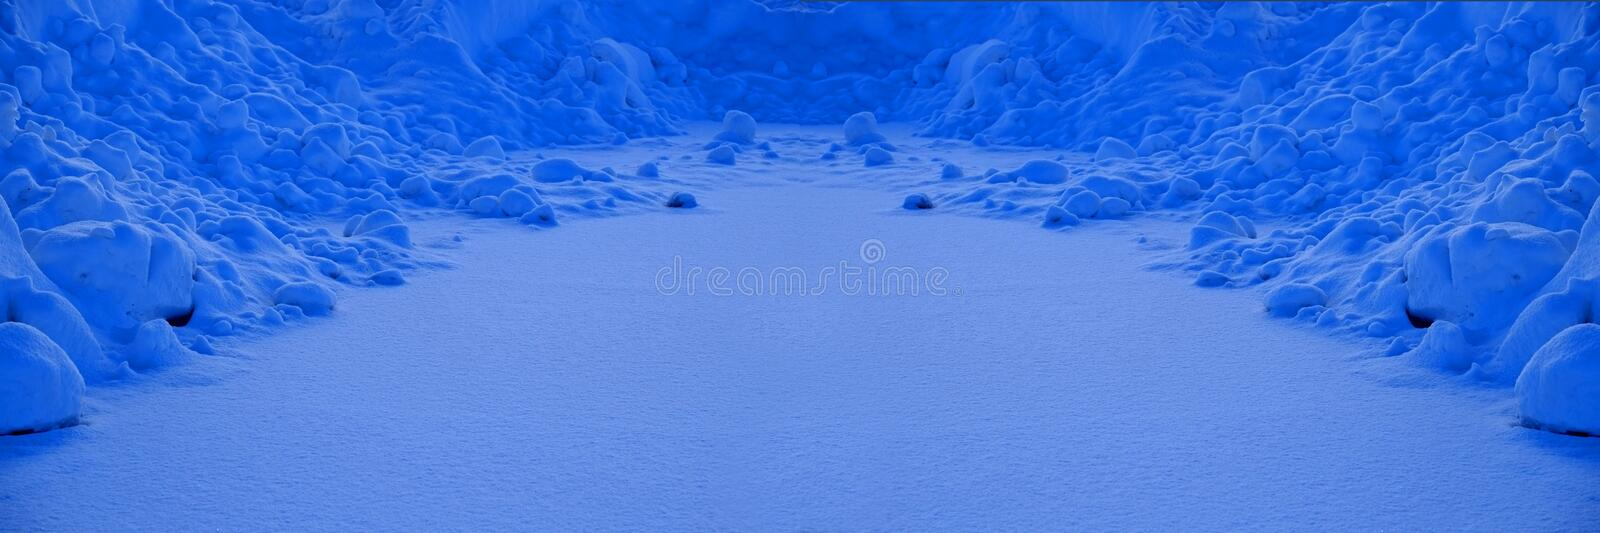 Snow Plowed From Road Into a Pile with Freshly Fallen royalty free stock photography